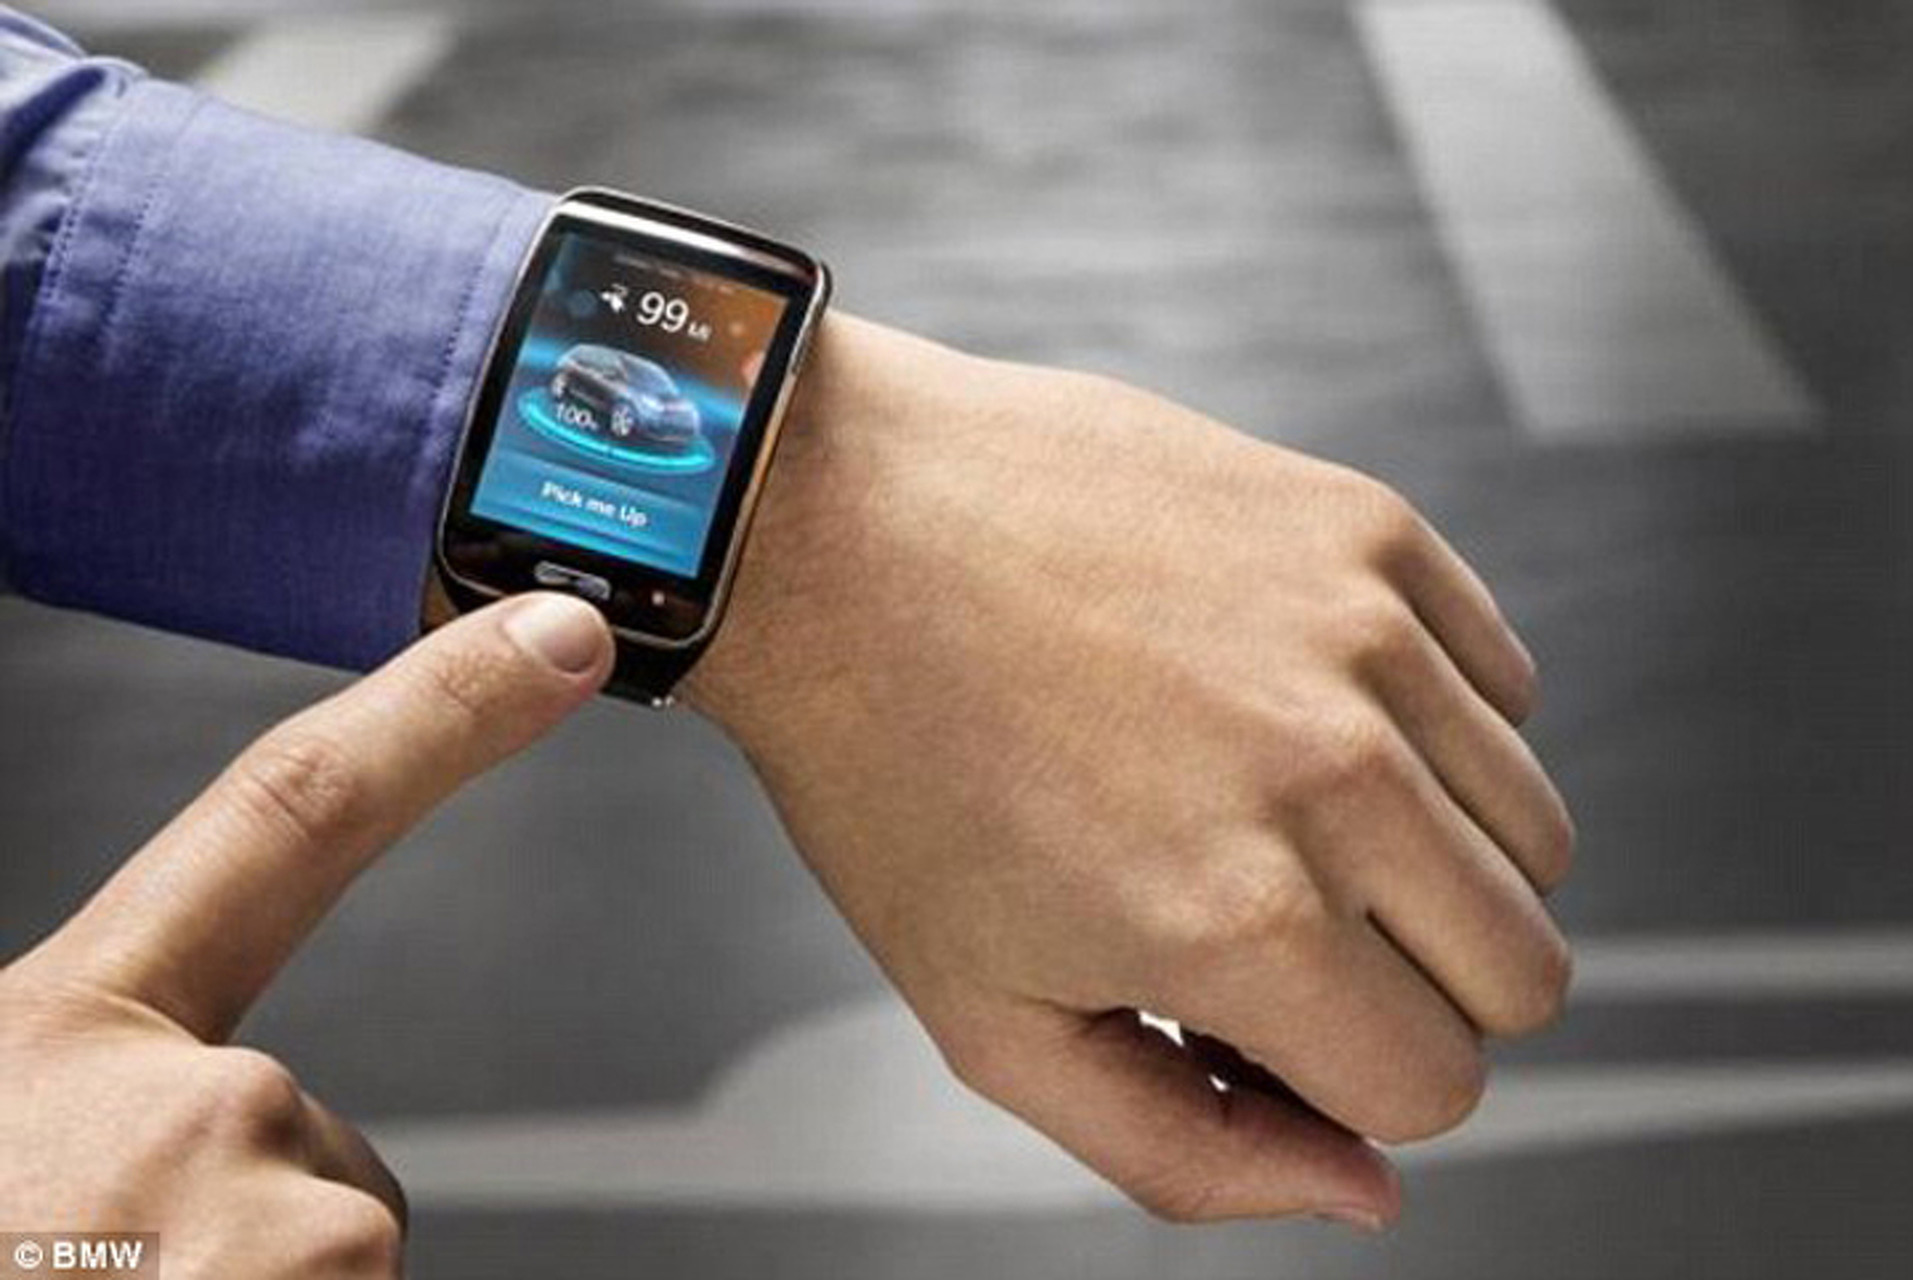 Have a Smartwatch? Park Your BMW With it